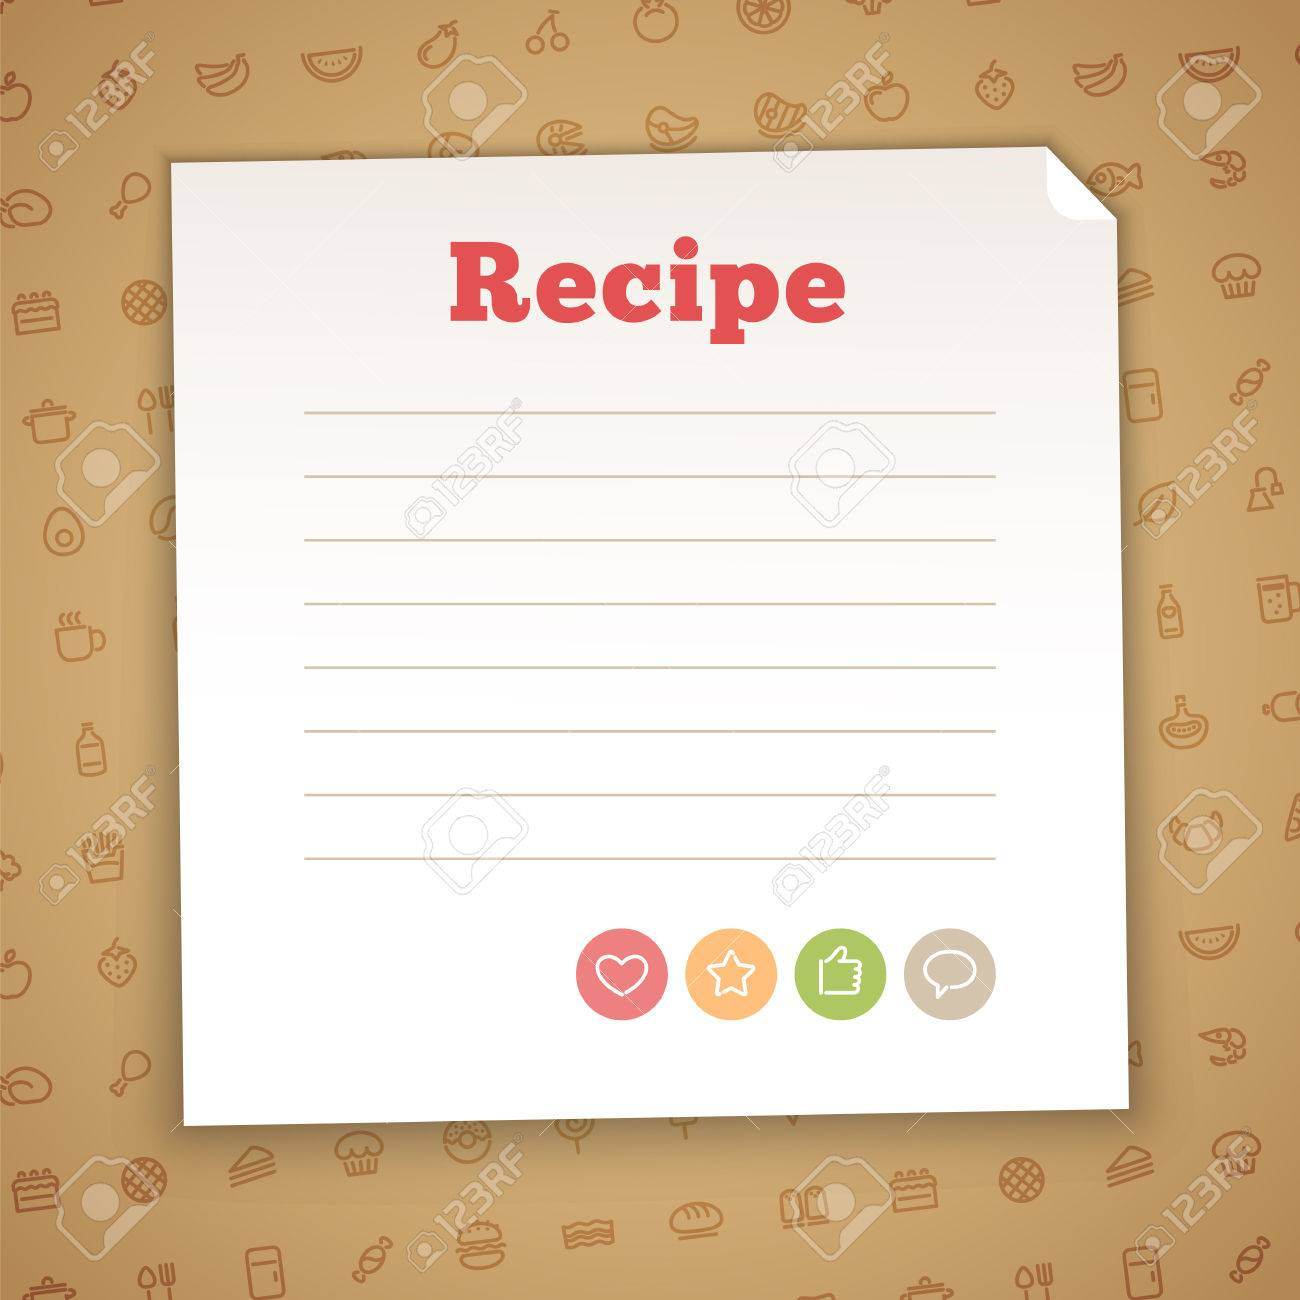 Blank Recipe Card Template Royalty Free Cliparts, Vectors, And ...